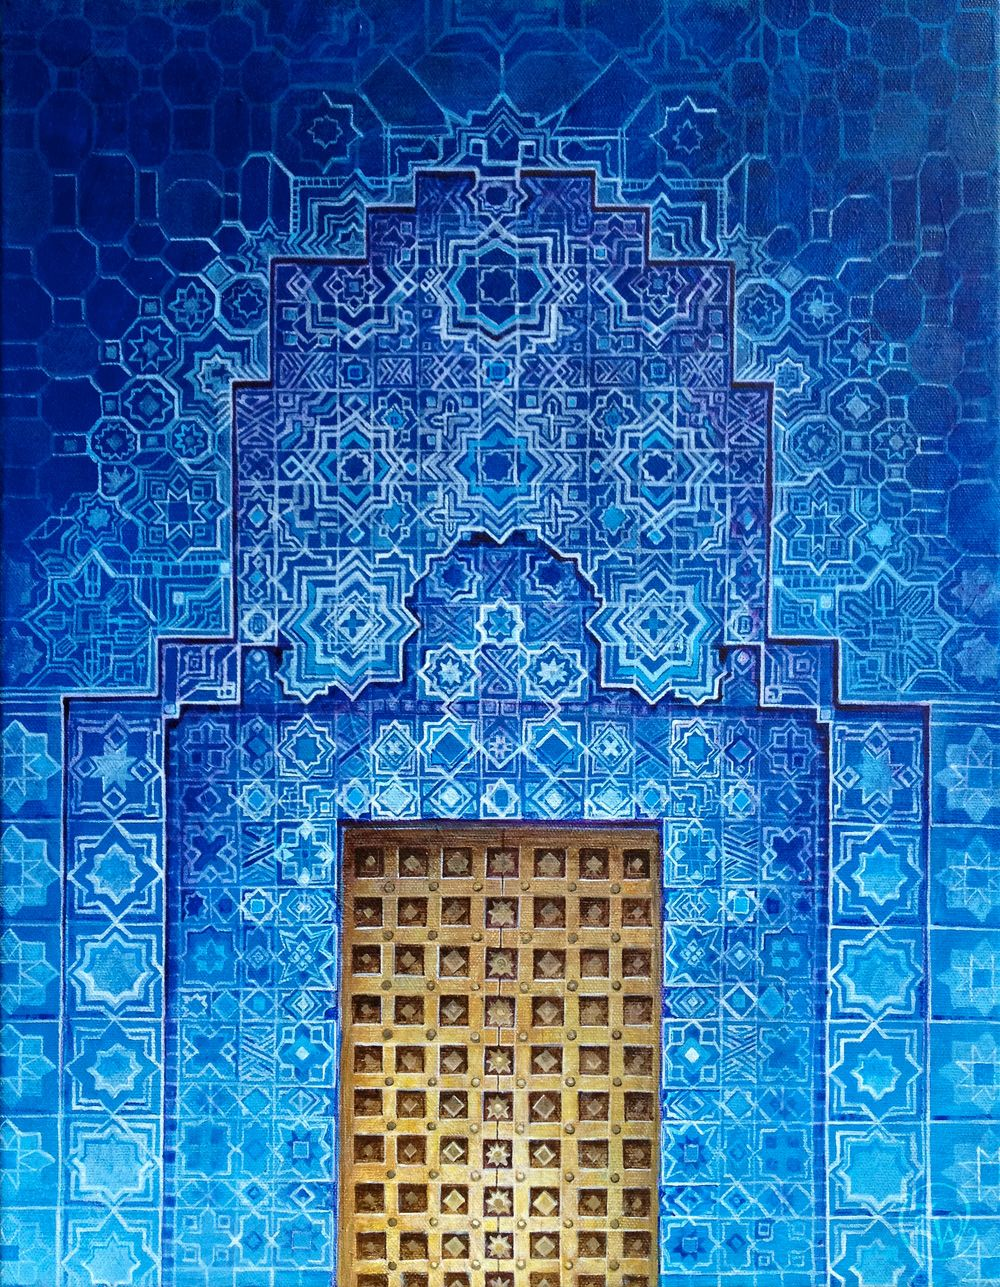 Gold Moroccan door on ornate blue building. Patterns